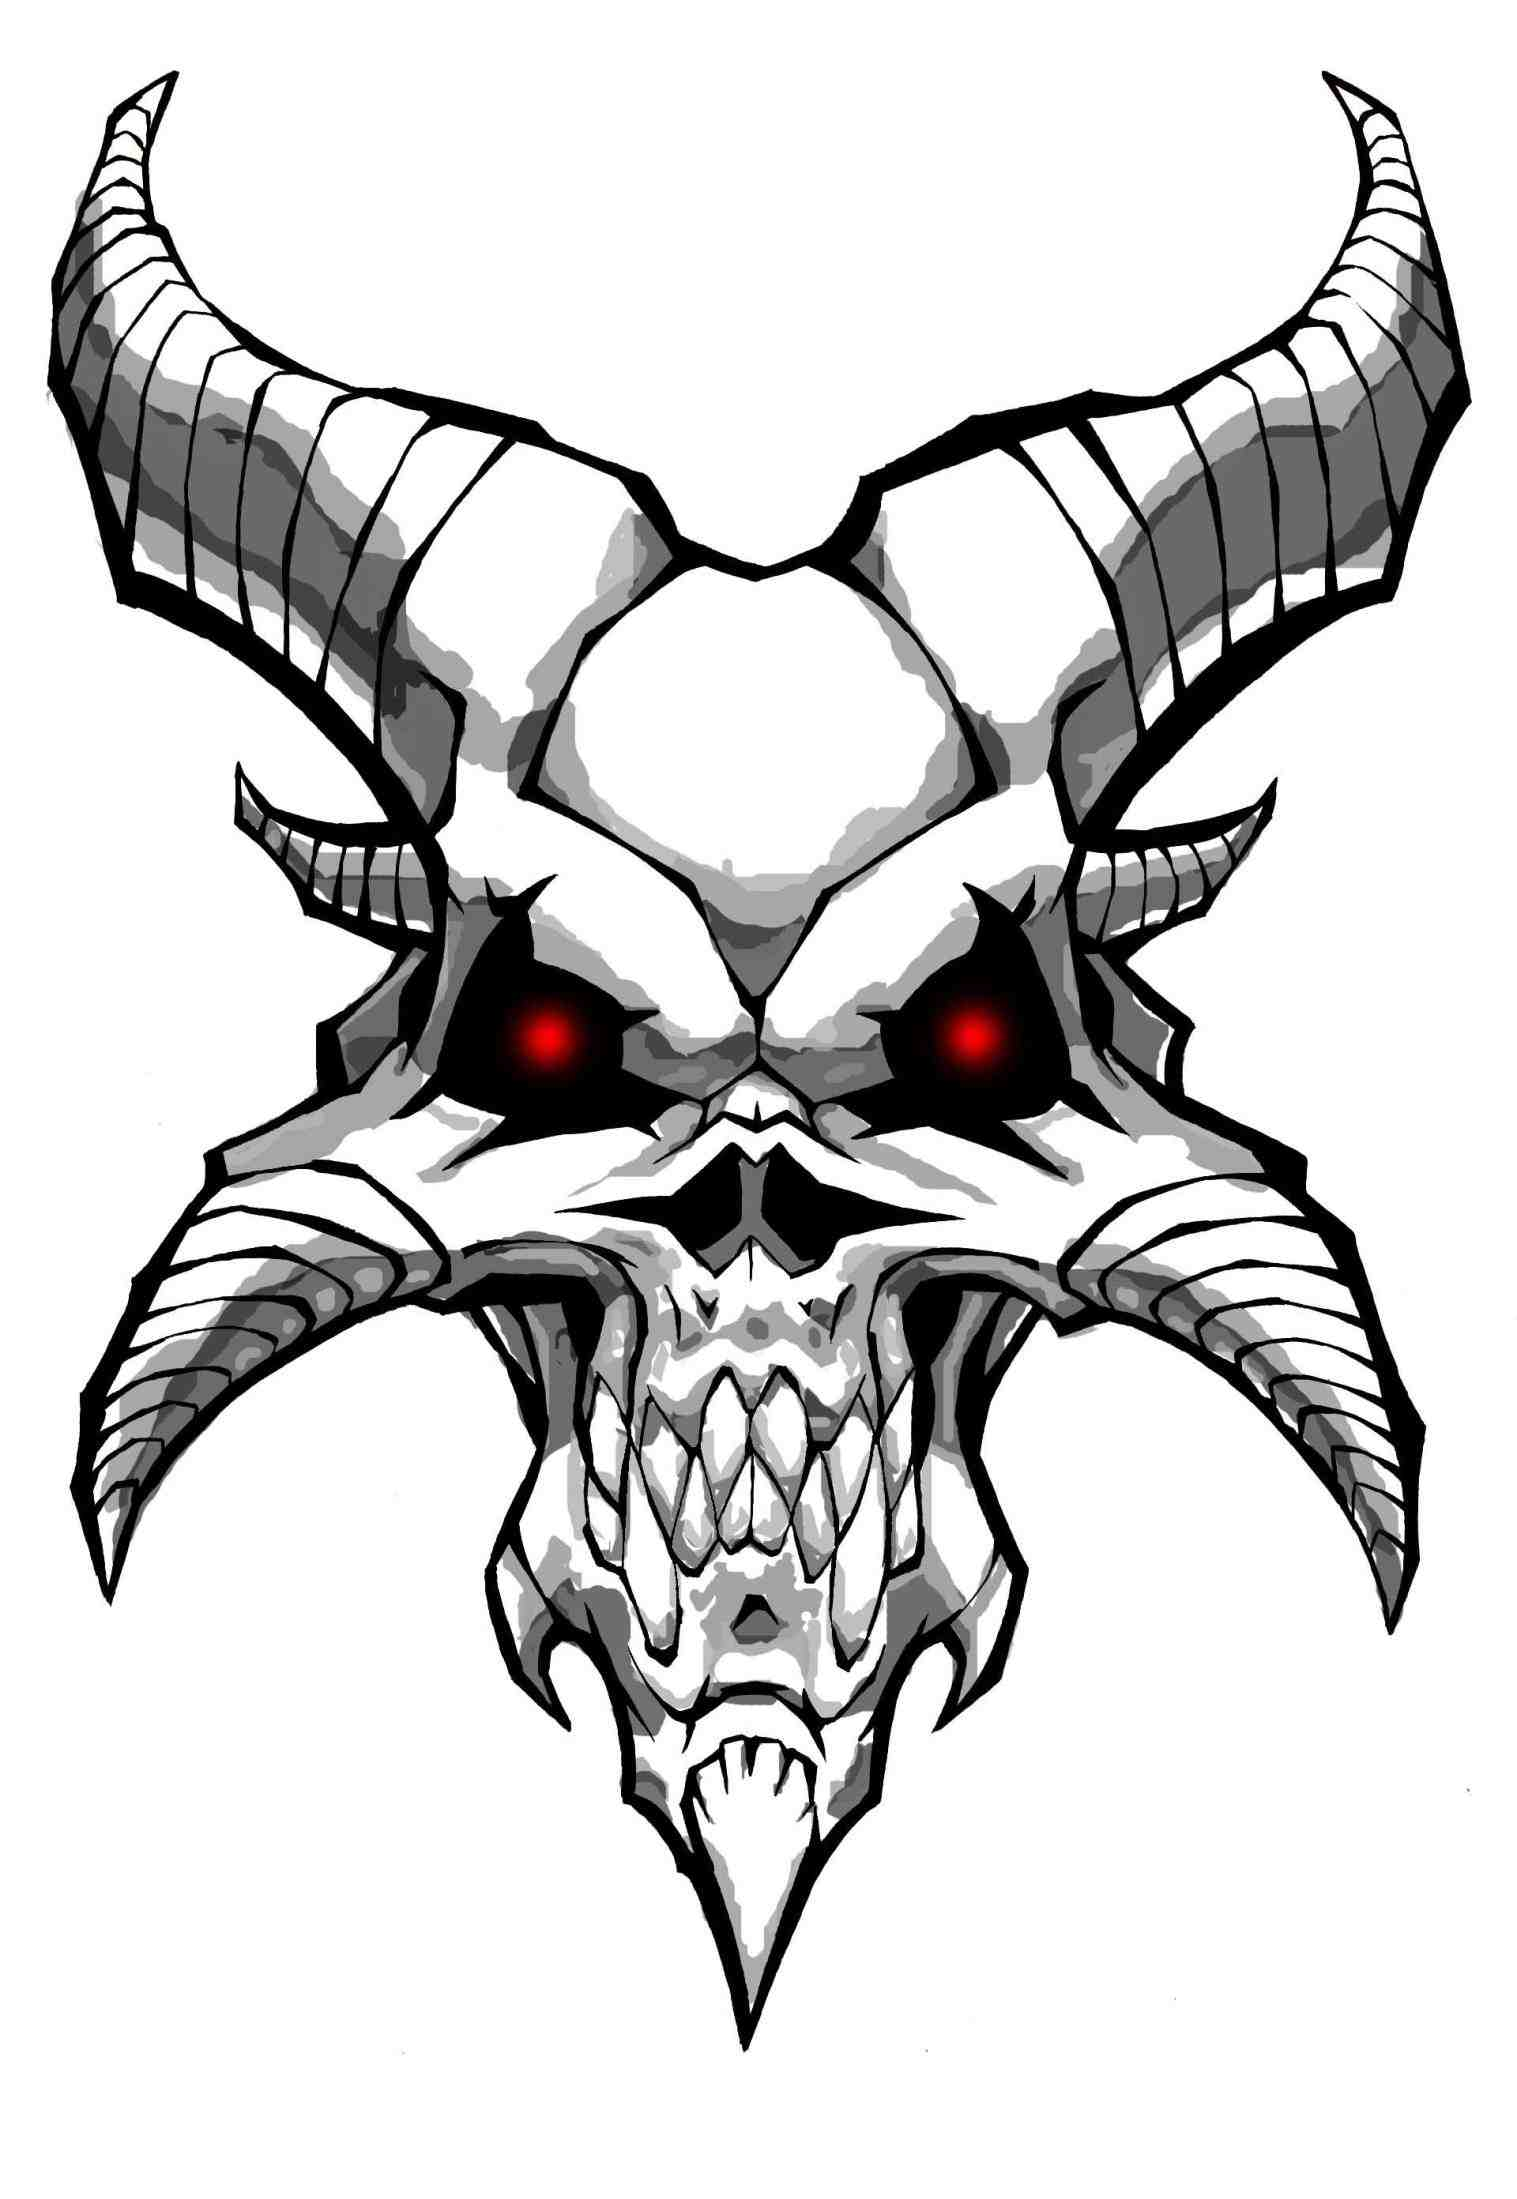 1517x2199 Cool Drawings Of Dragons And Skulls